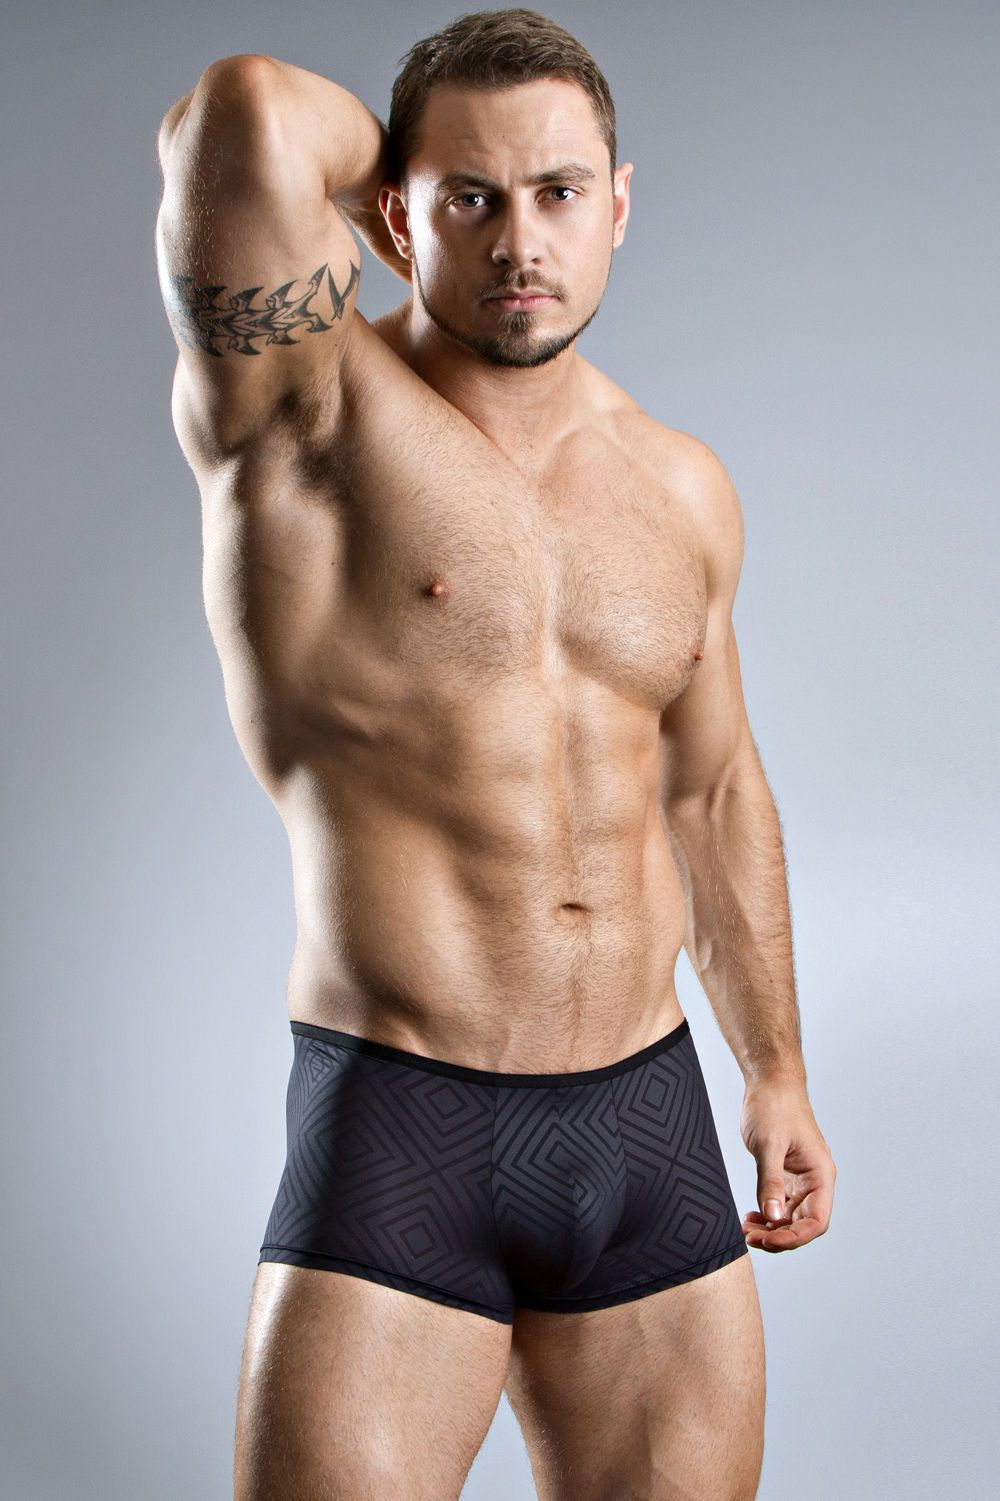 31668054bc The HOM Cristal Trunk is THE ultimate light mini boxers for men. Stunning  diamond shape print and a little bit cheeky £30  HOM  boxerbriefs  cheeks   diamond ...